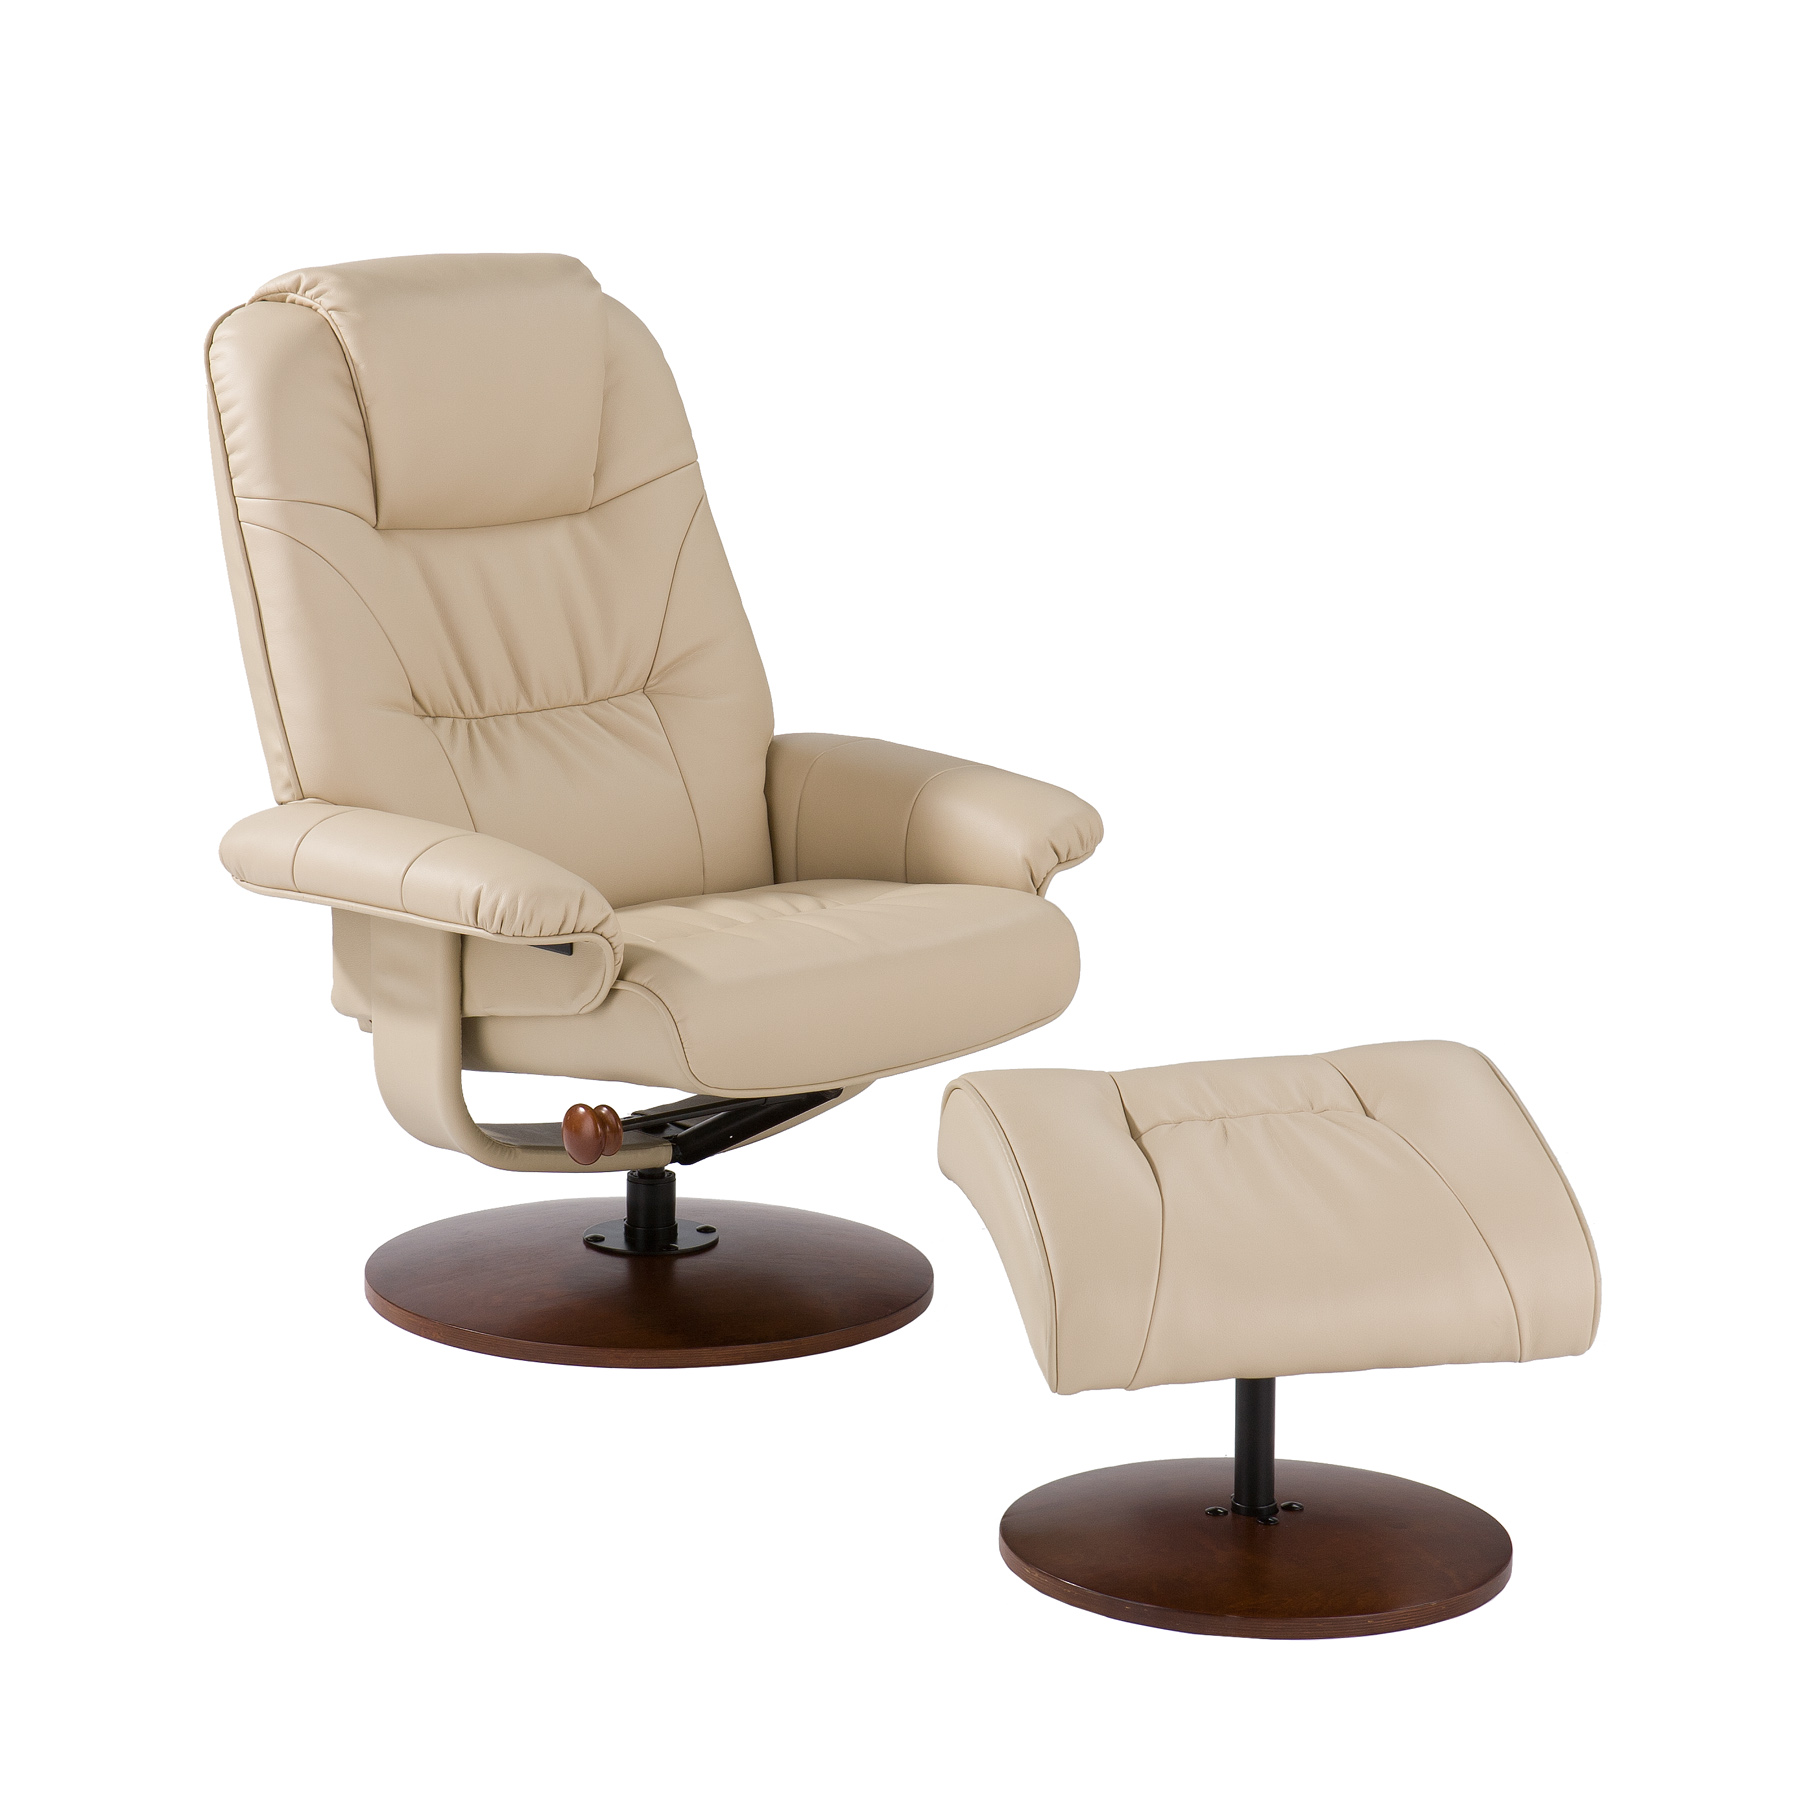 Southern enterprises up4932rc leather recliner and ottoman set